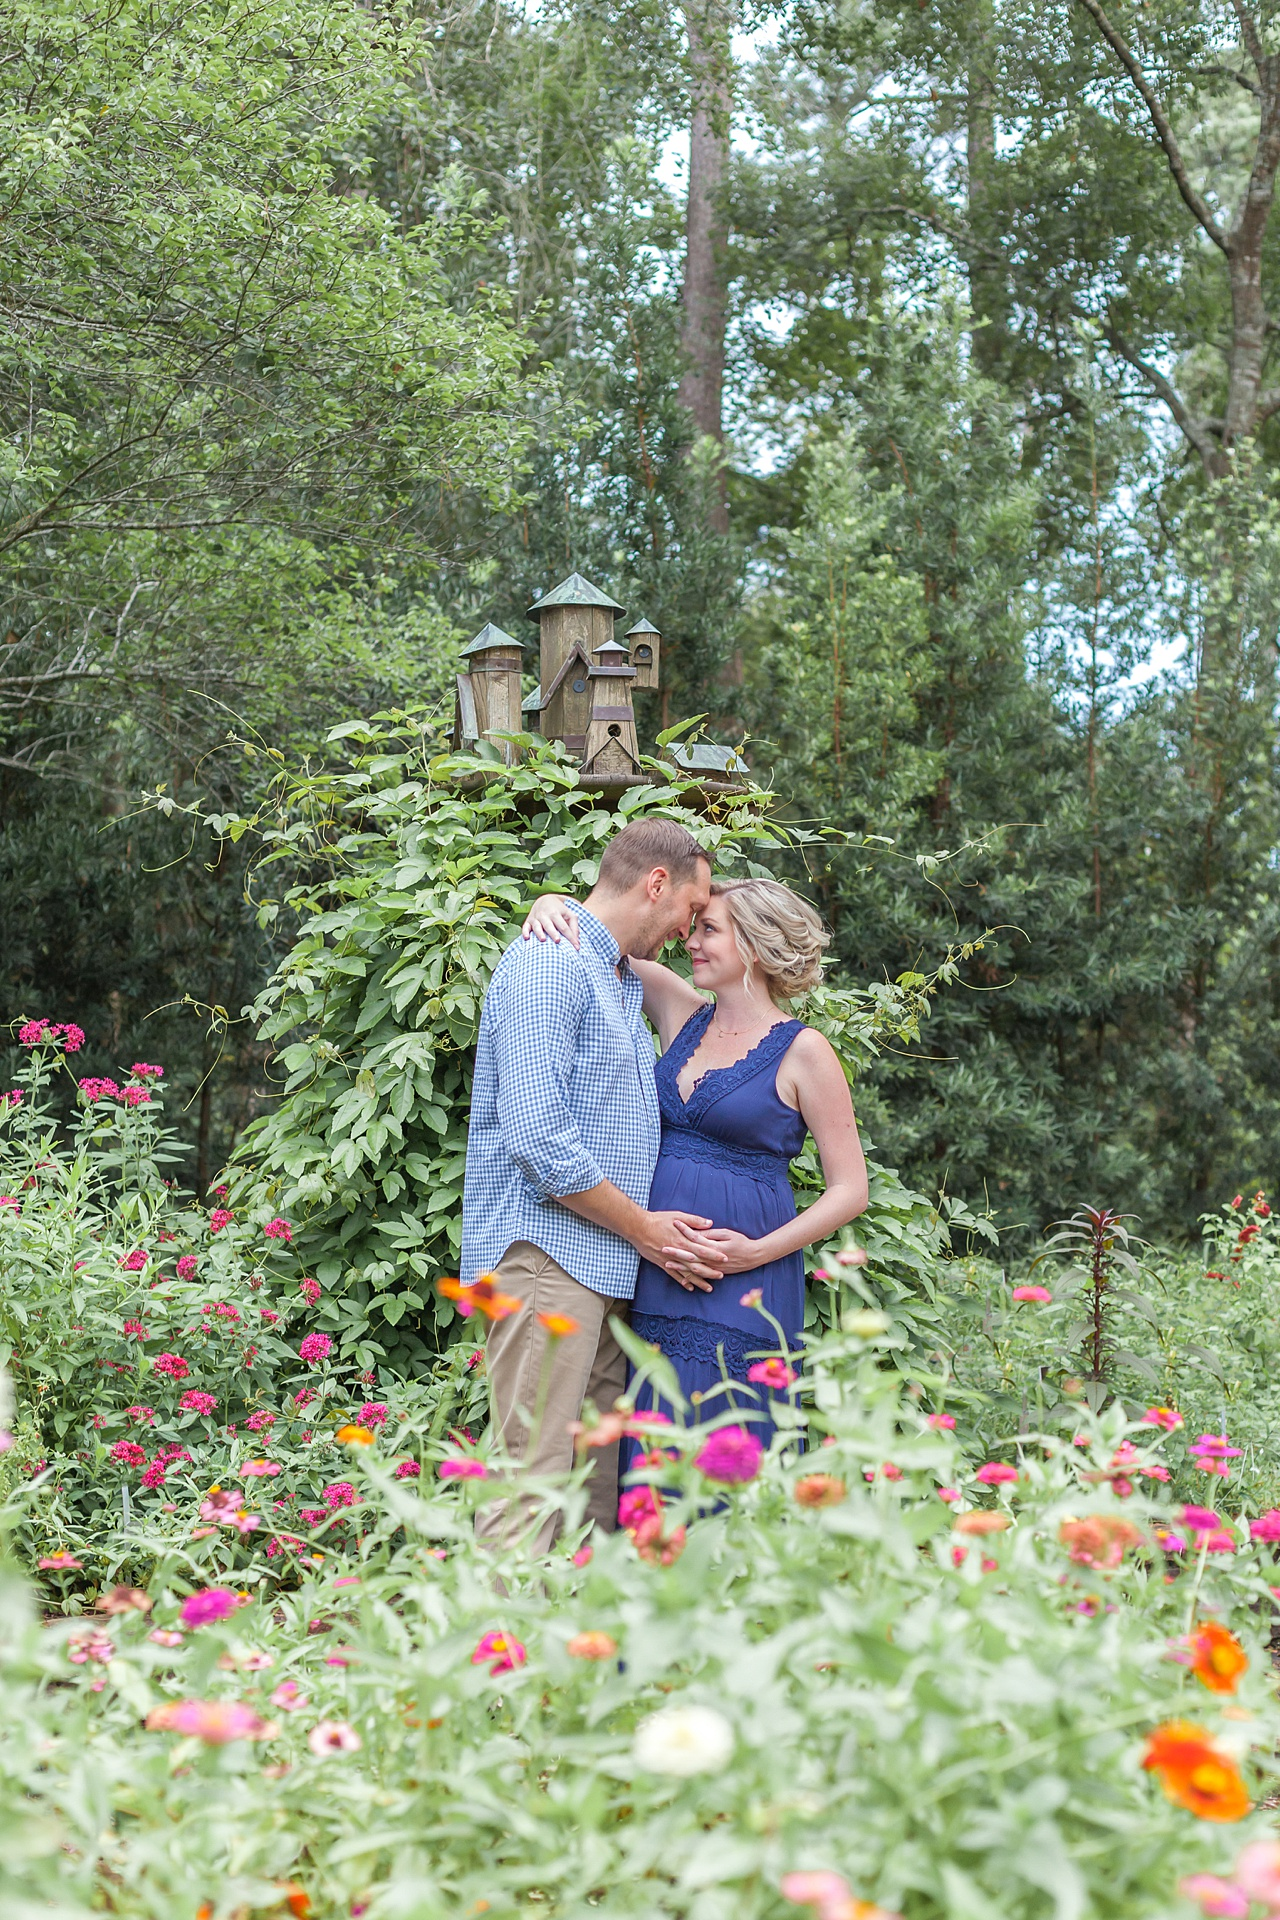 garden-themed maternity session in houston texas by kristal bean photography